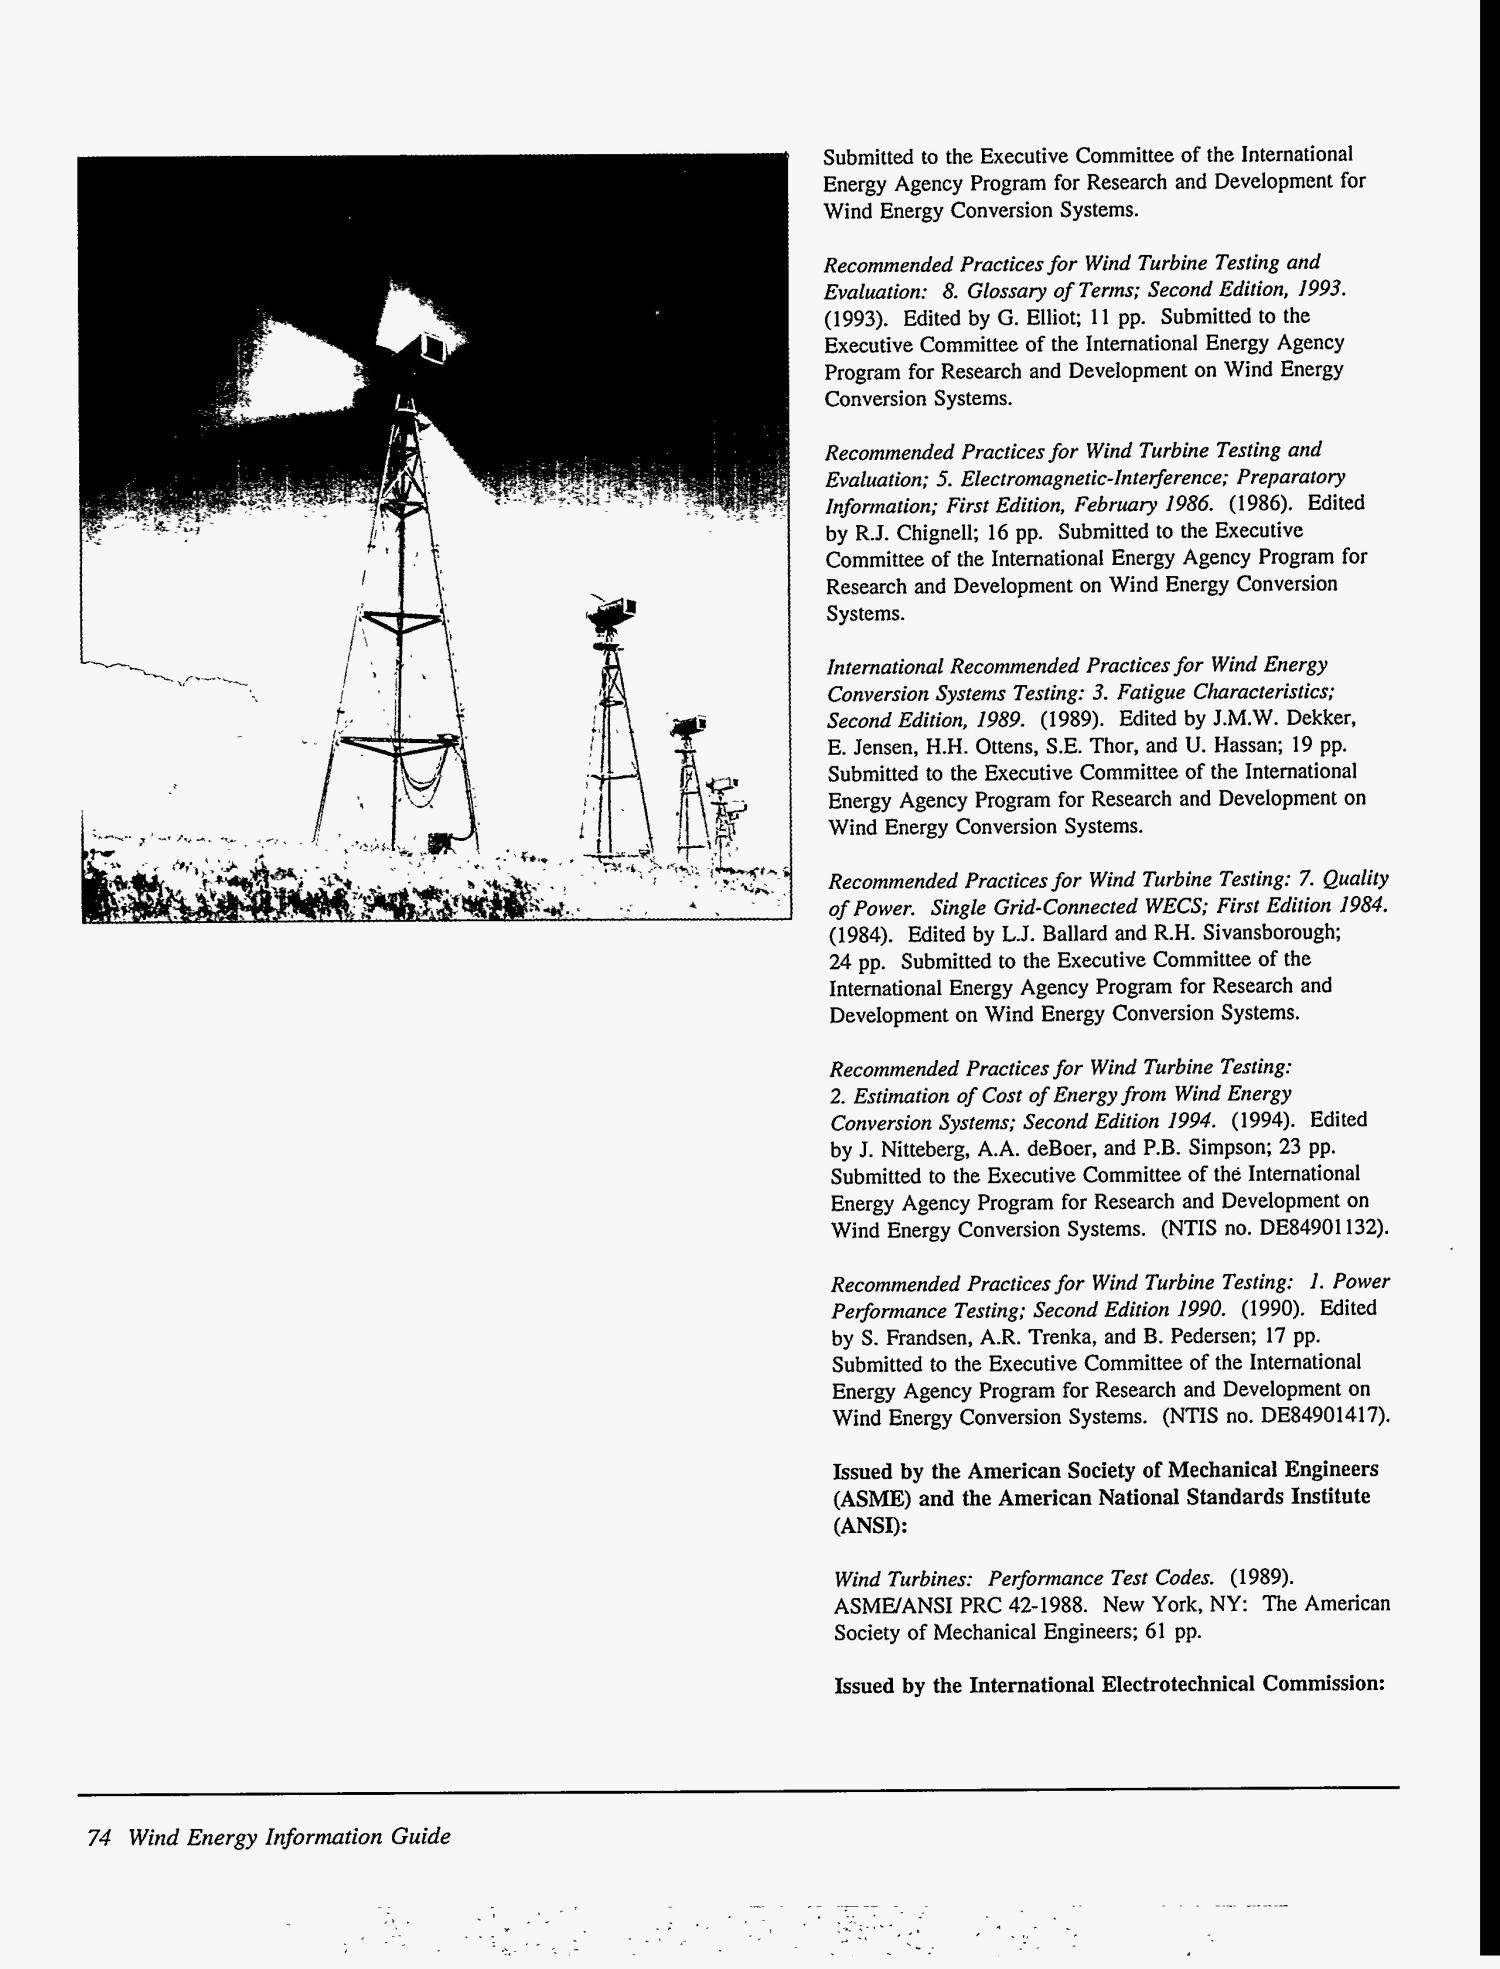 Wind energy information guide Page 81 of 131 Digital Library